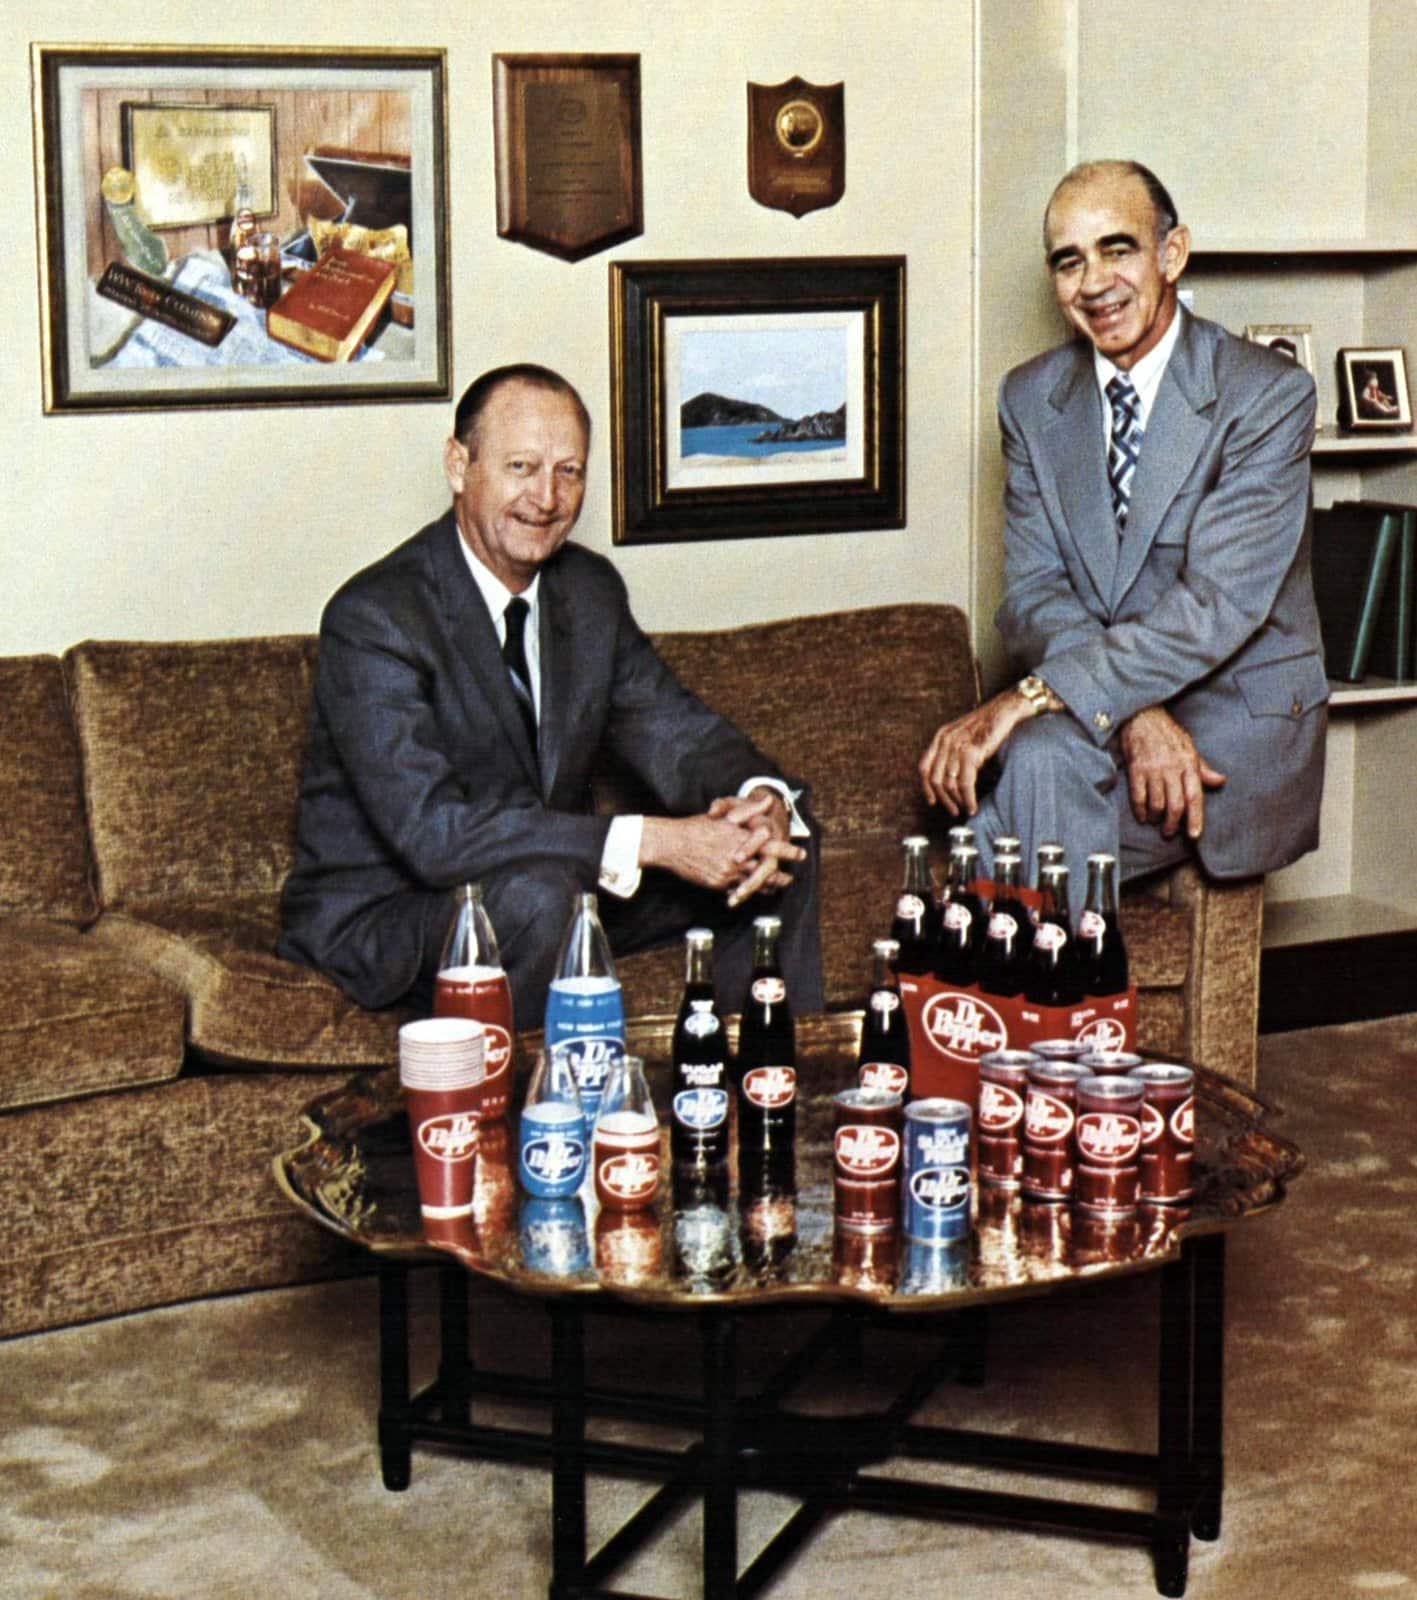 H S Billingsley, Chairman of the Board (left) and W W Clements, President and CEO of Dr Pepper (1971)